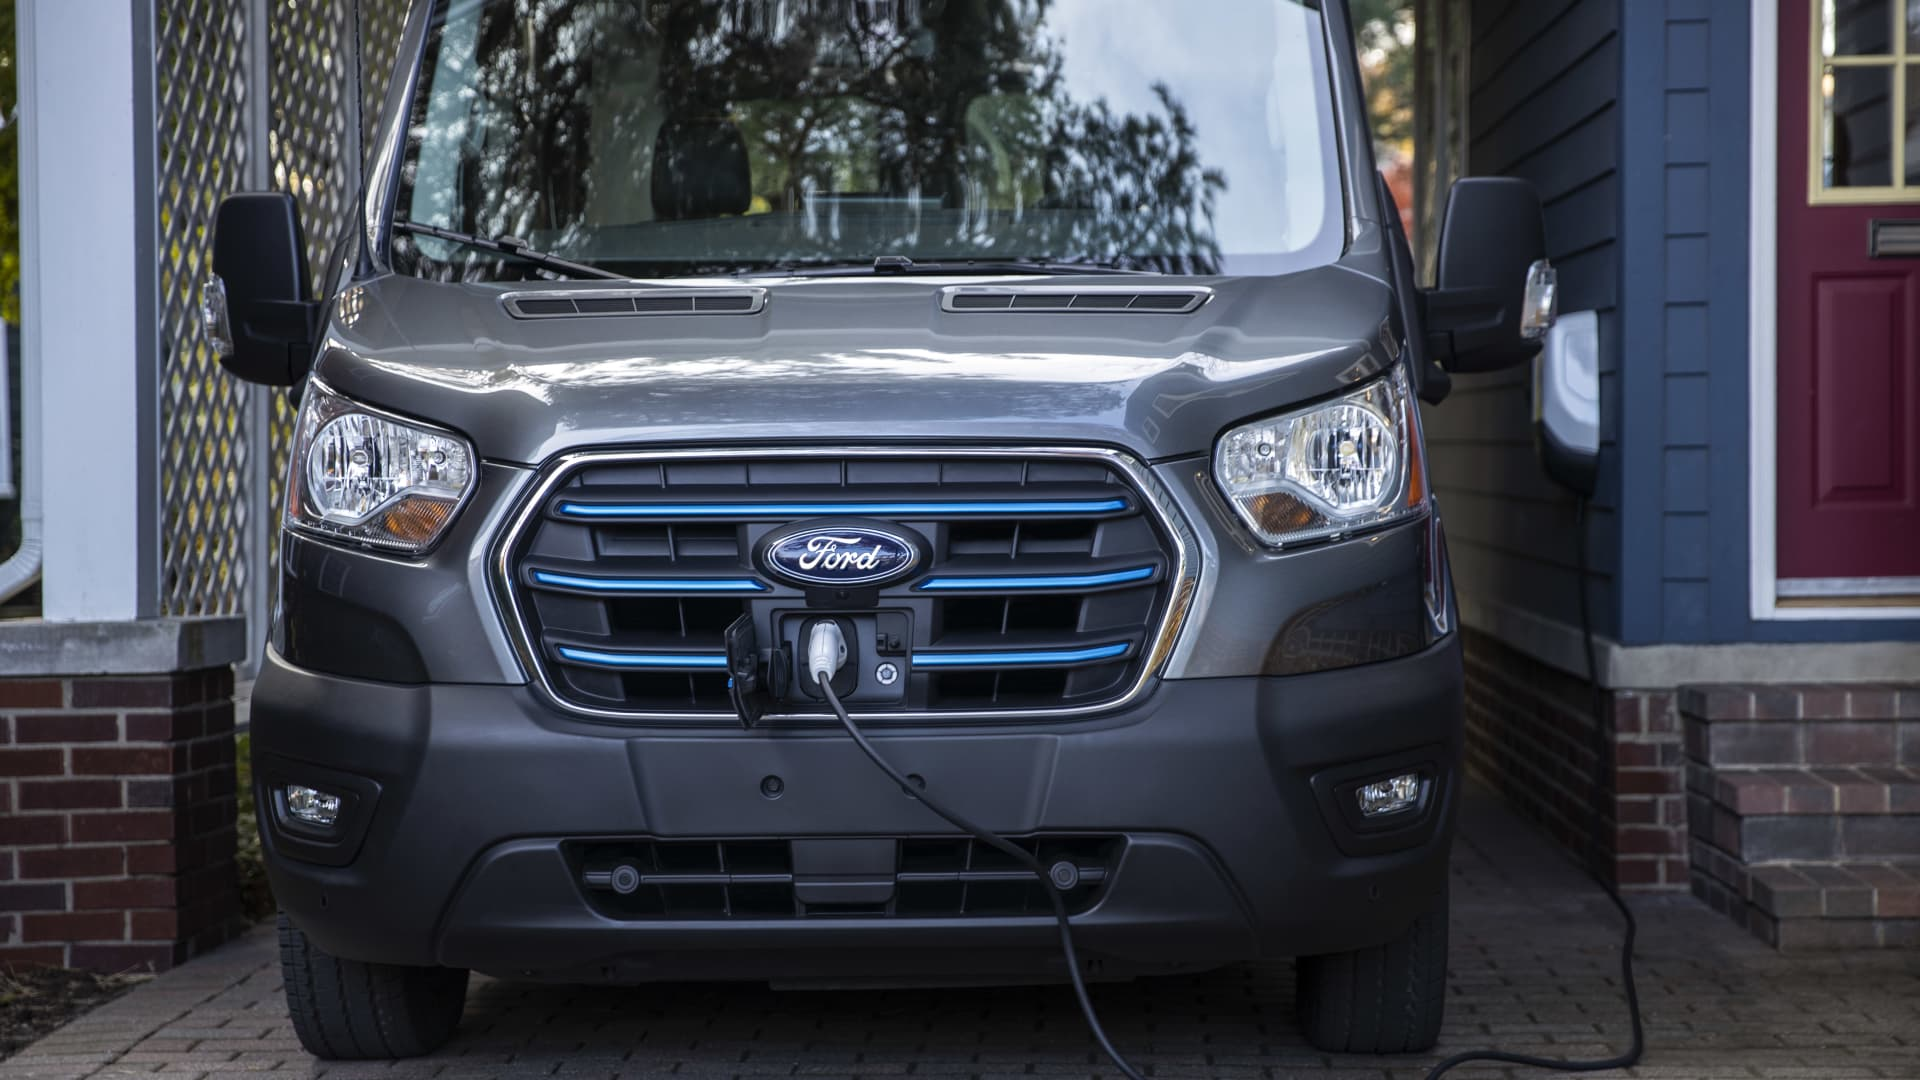 The charging port for the Ford E-Transit van is located in the vehicle's grille.